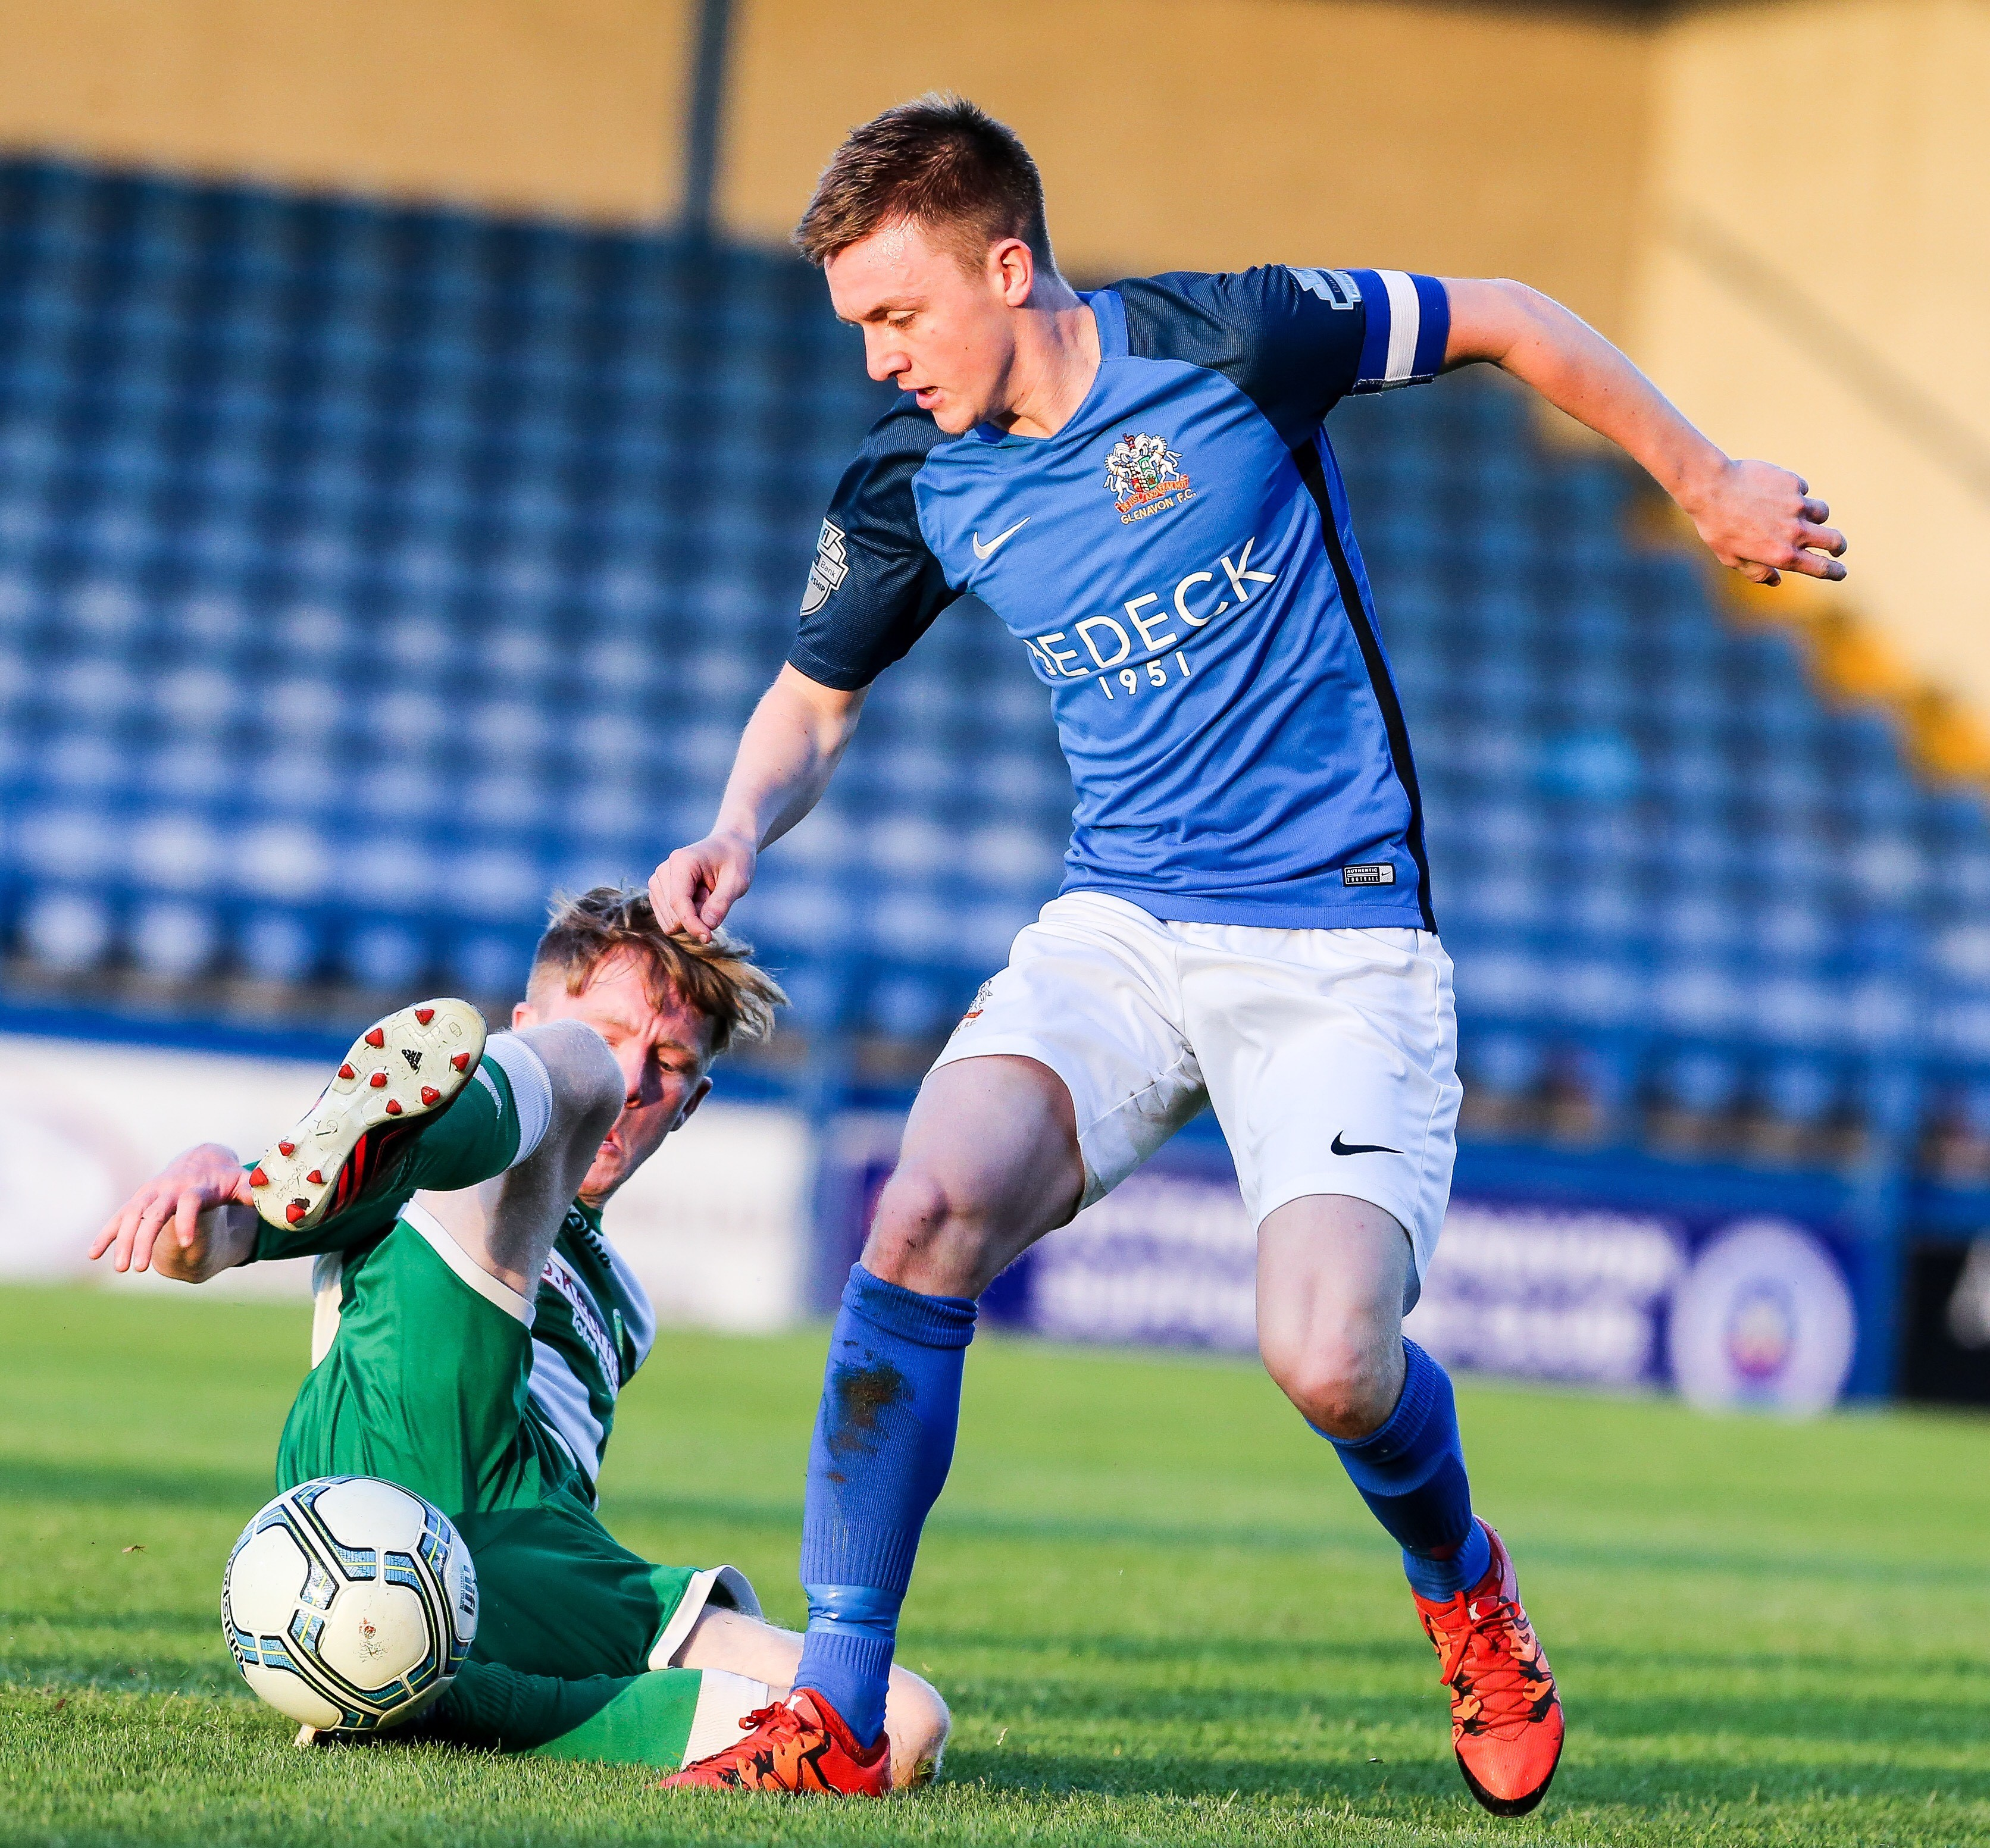 Glenavon 5-1 Donegal Celtic